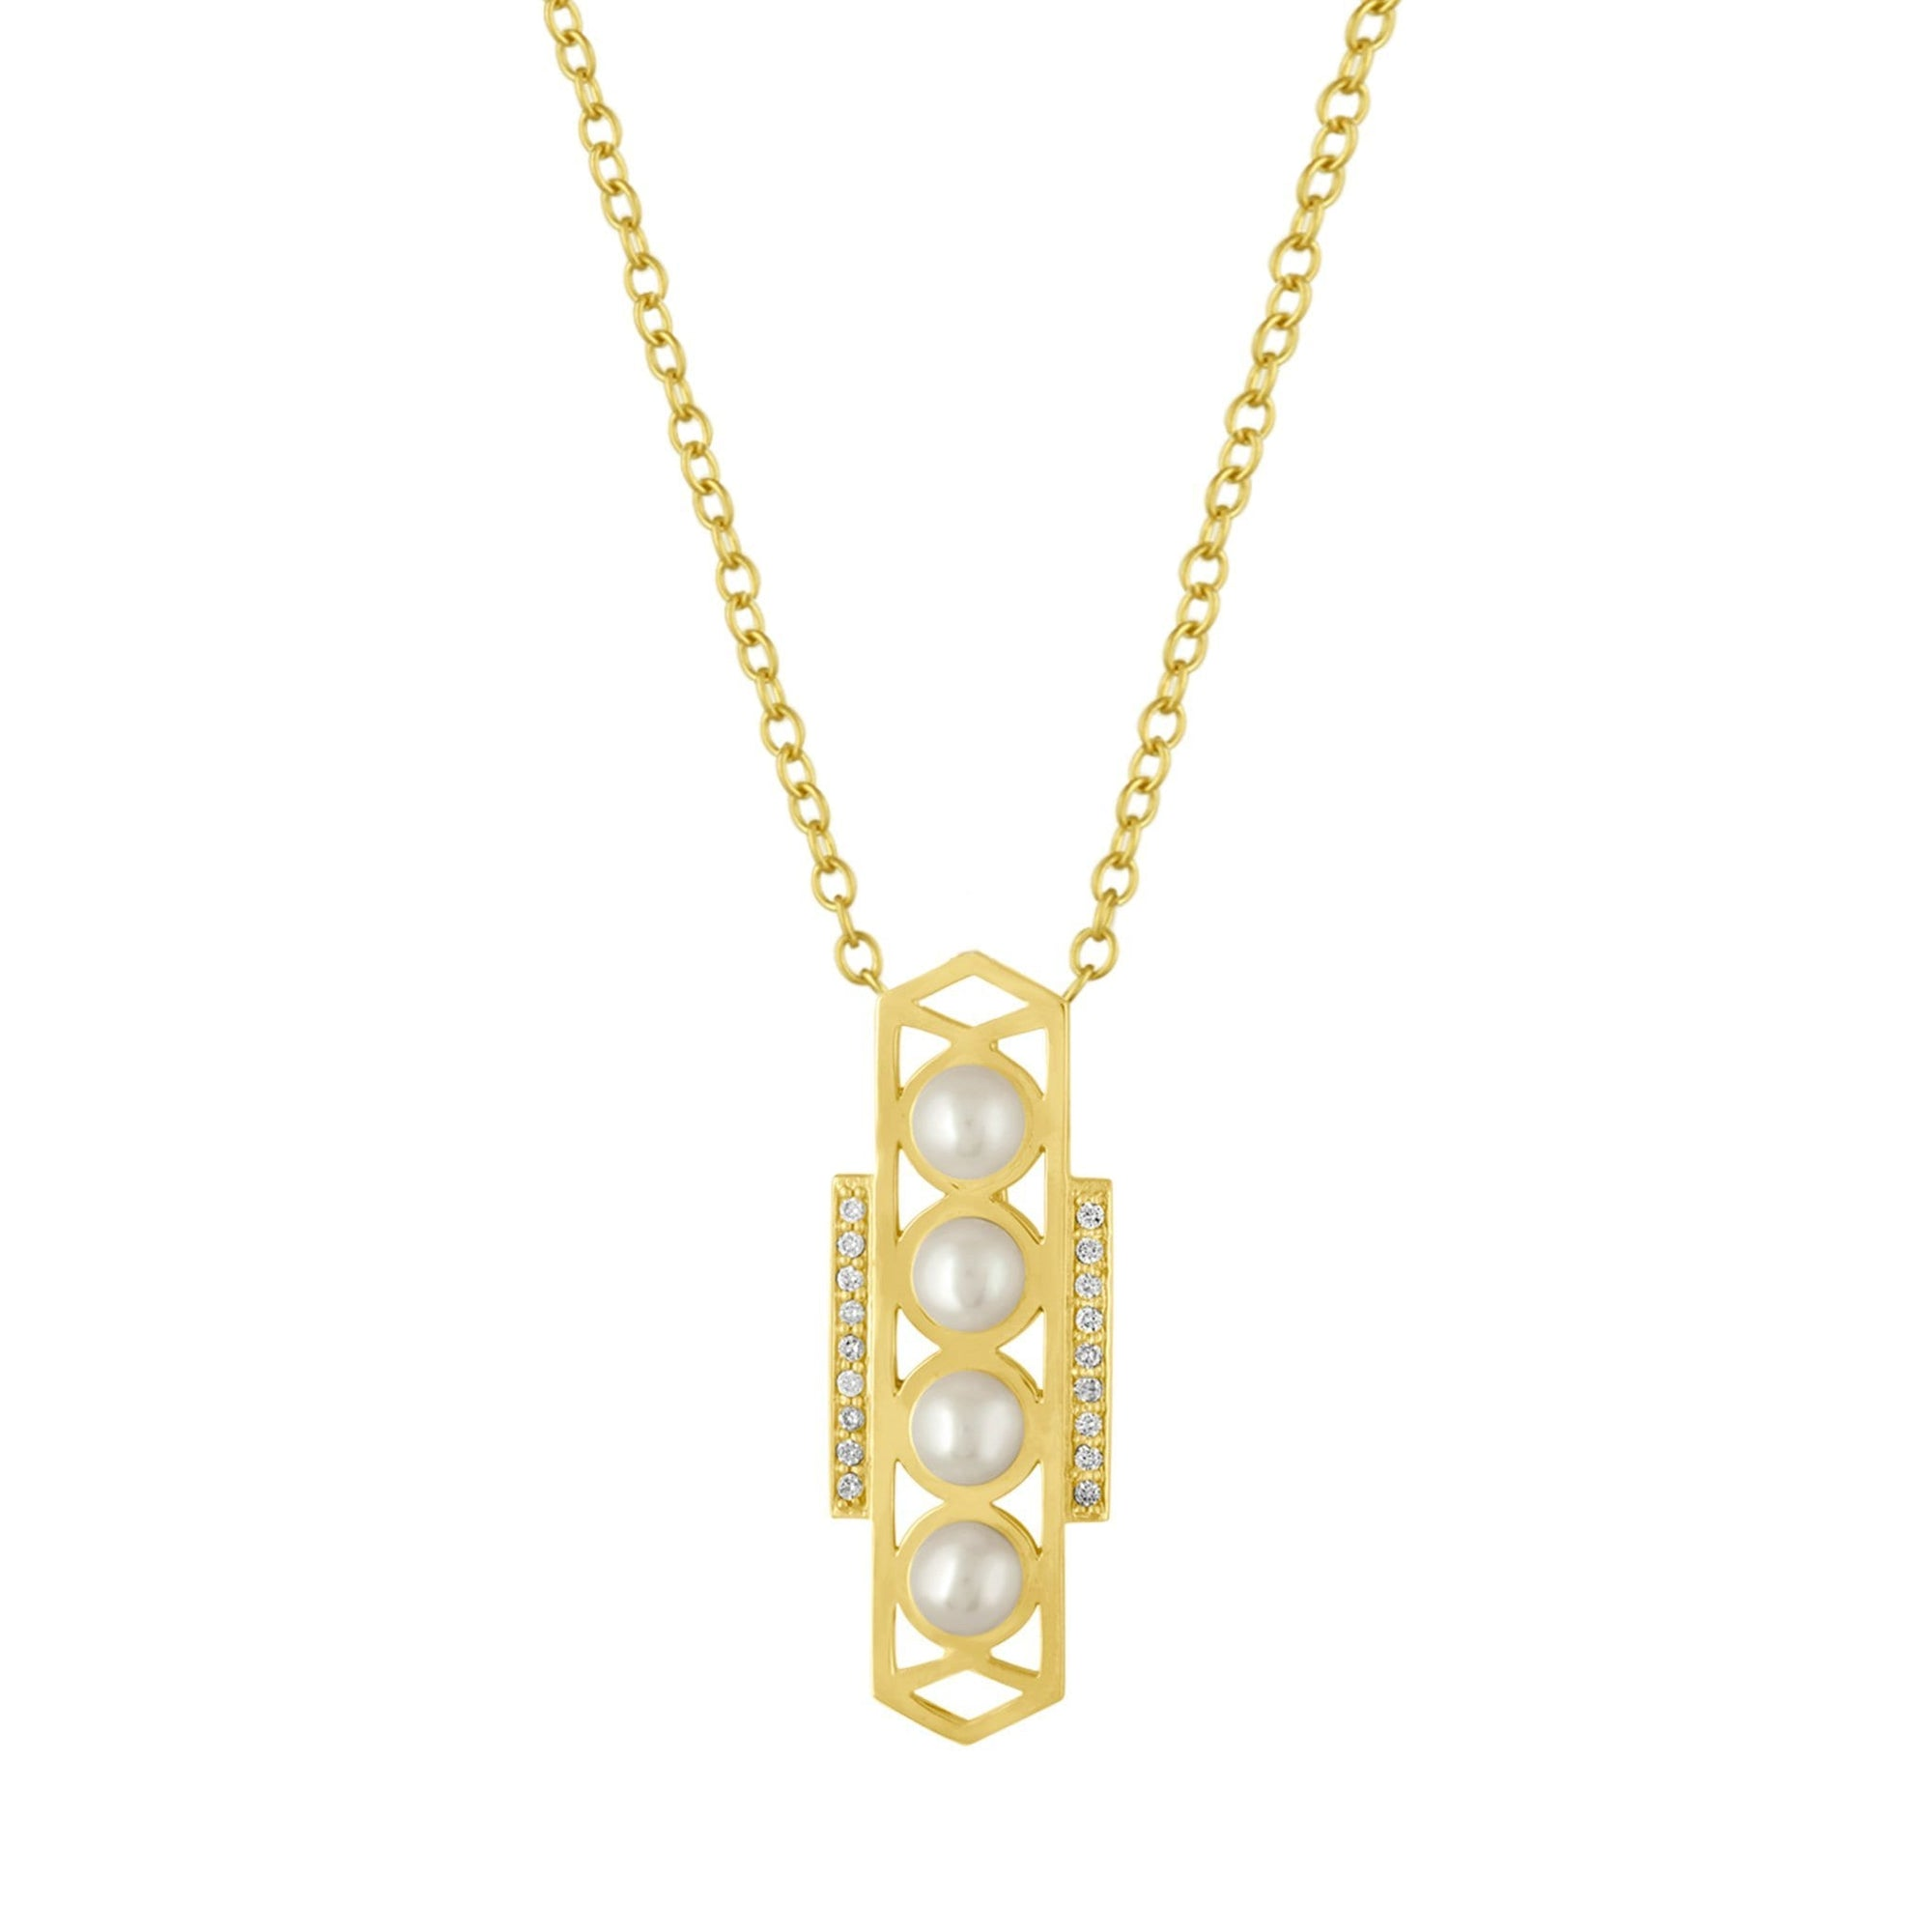 Cosmo Pendant Necklace: 18k Gold, White Pearls